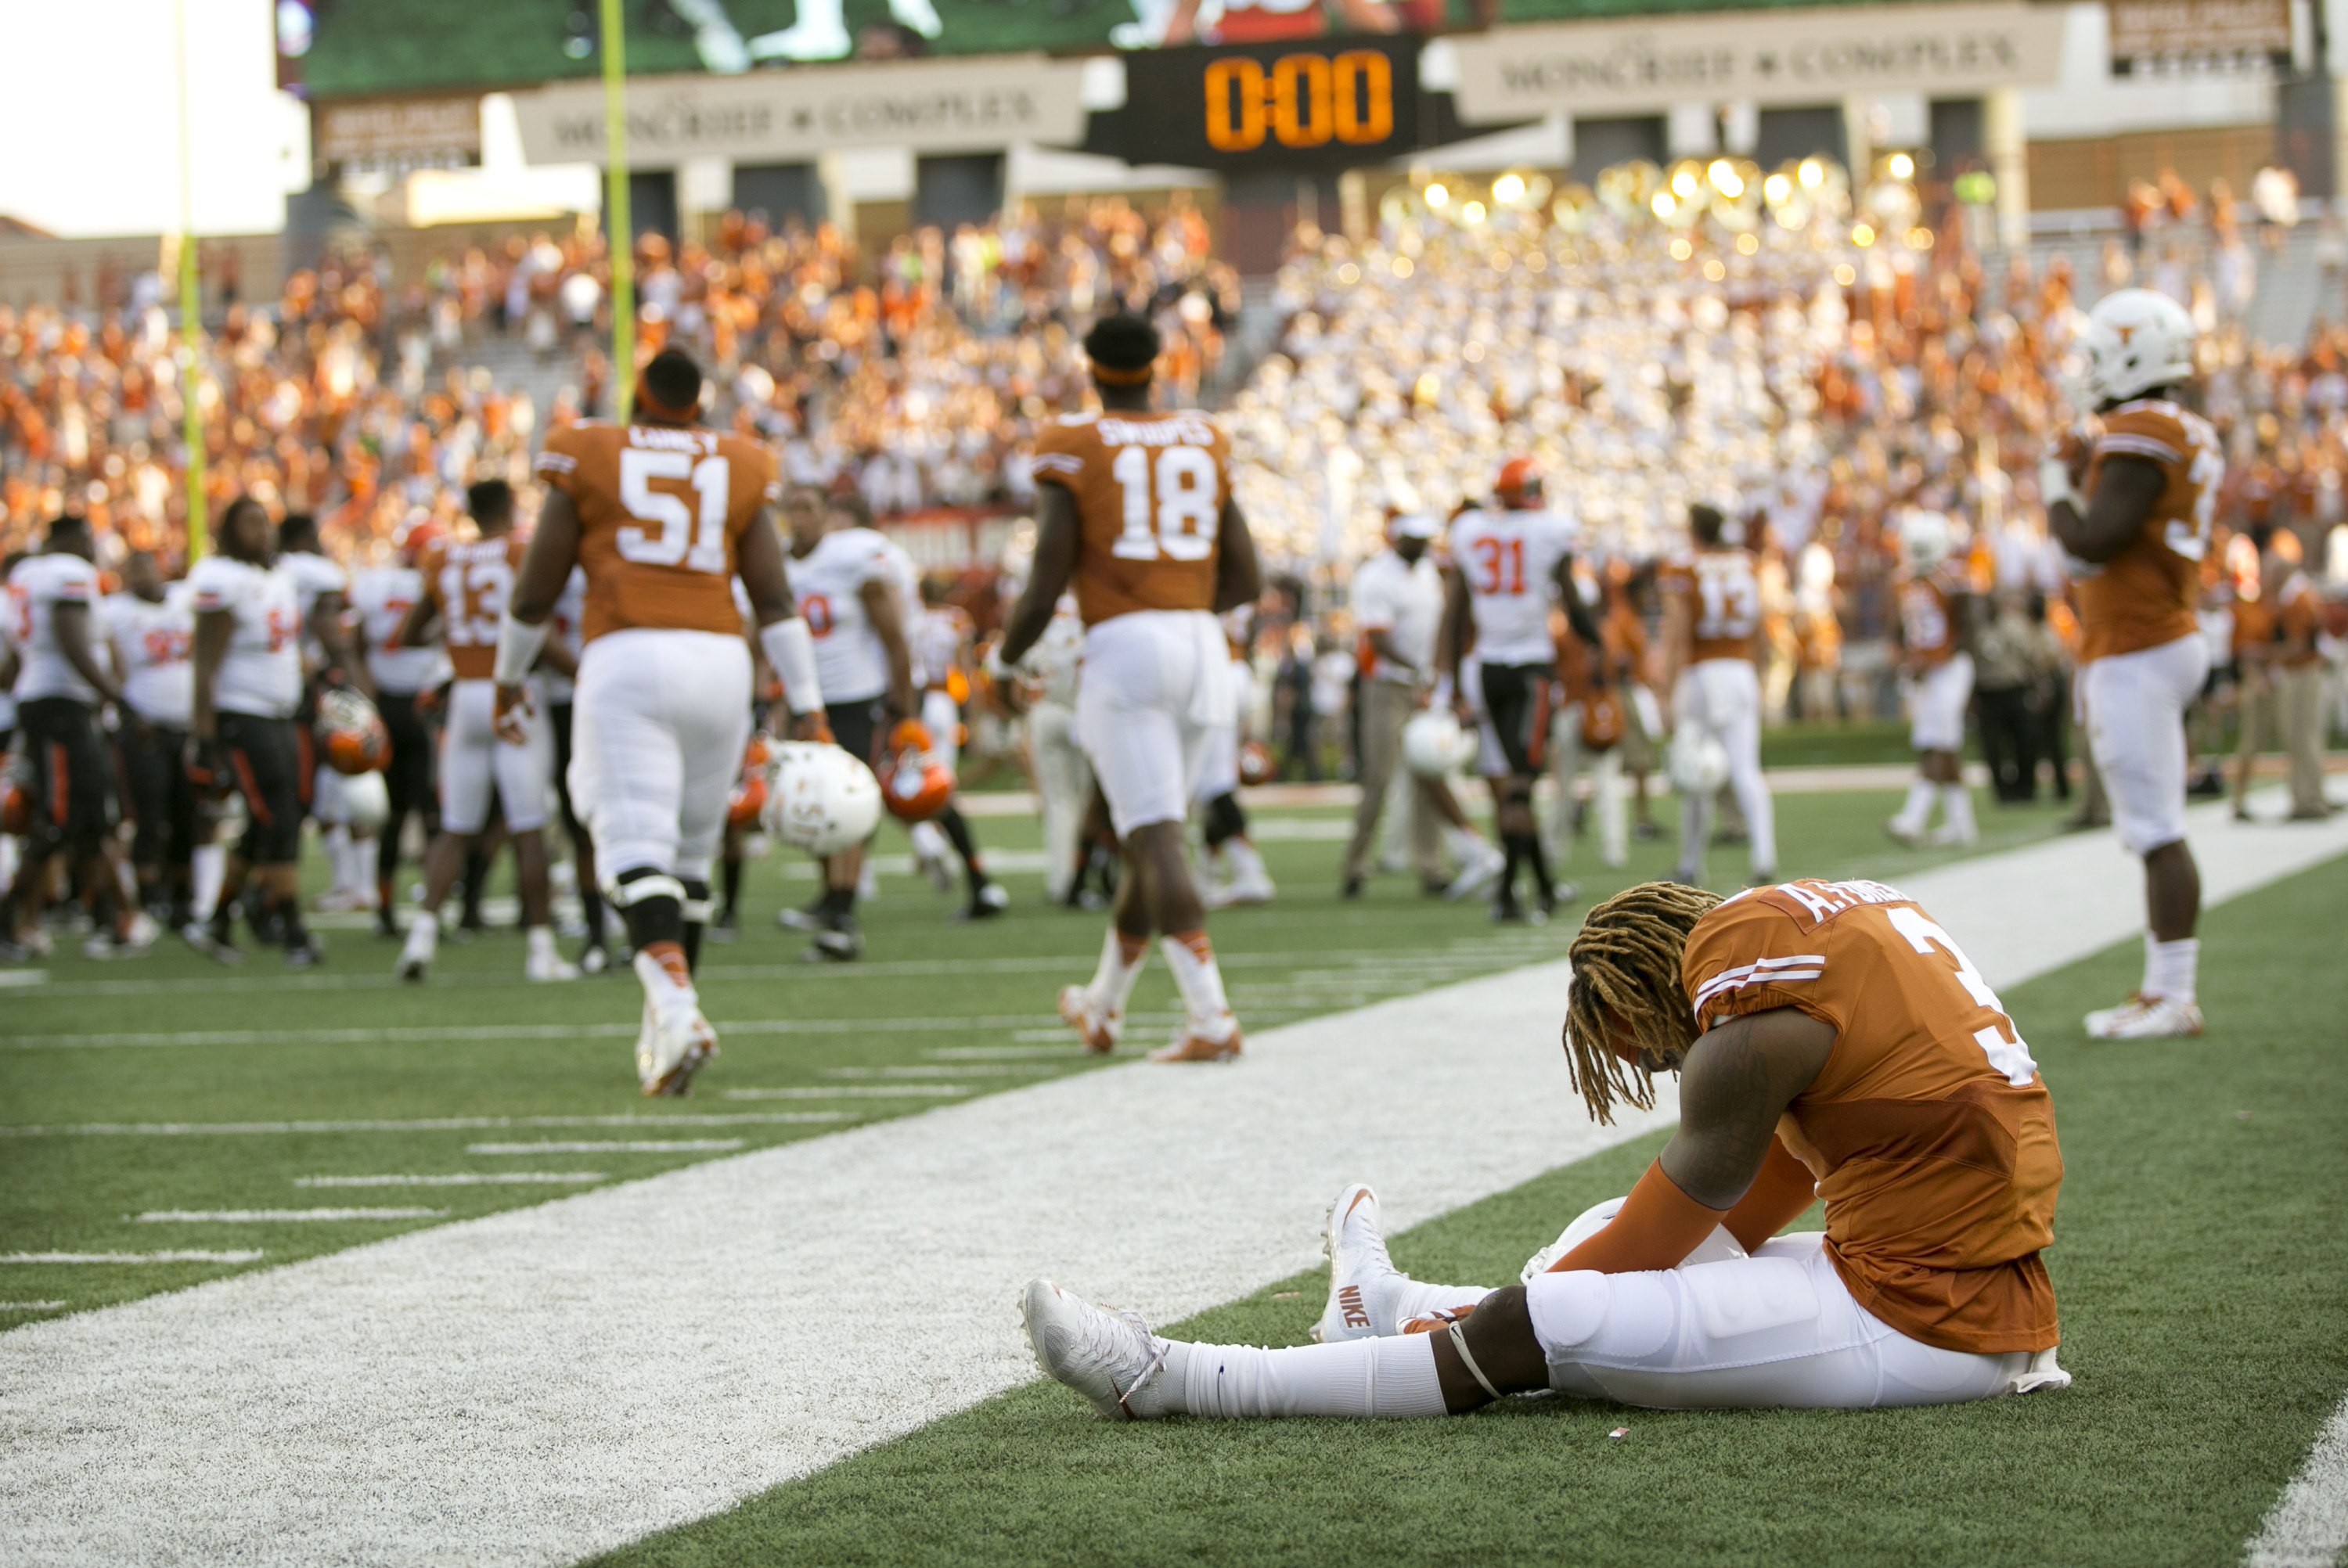 Texas wide receiver Armanti Foreman sits on the field after Oklahoma State's 30-27 win in an NCAA college football game in Austin, Texas, Saturday, Sept. 26, 2015.  (Jay Janner/Austin American-Statesman via AP)